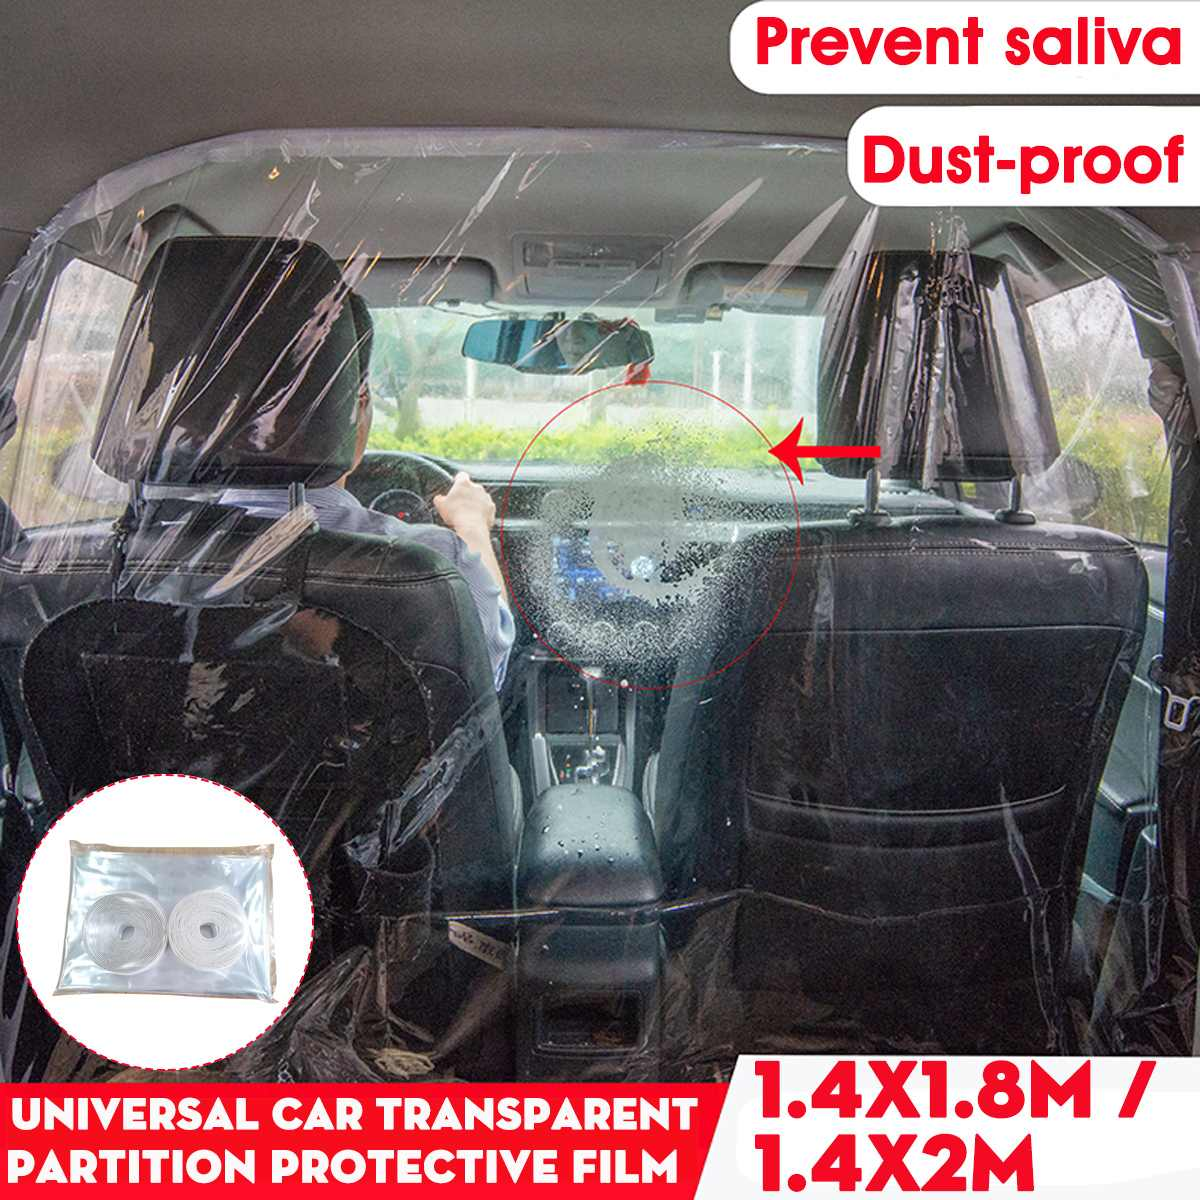 1.4x1.8m/1.4x2m Car Isolation Curtain Sealed Taxi Cab Partition Screen Film Protection Virus Prevention Anti-droplets